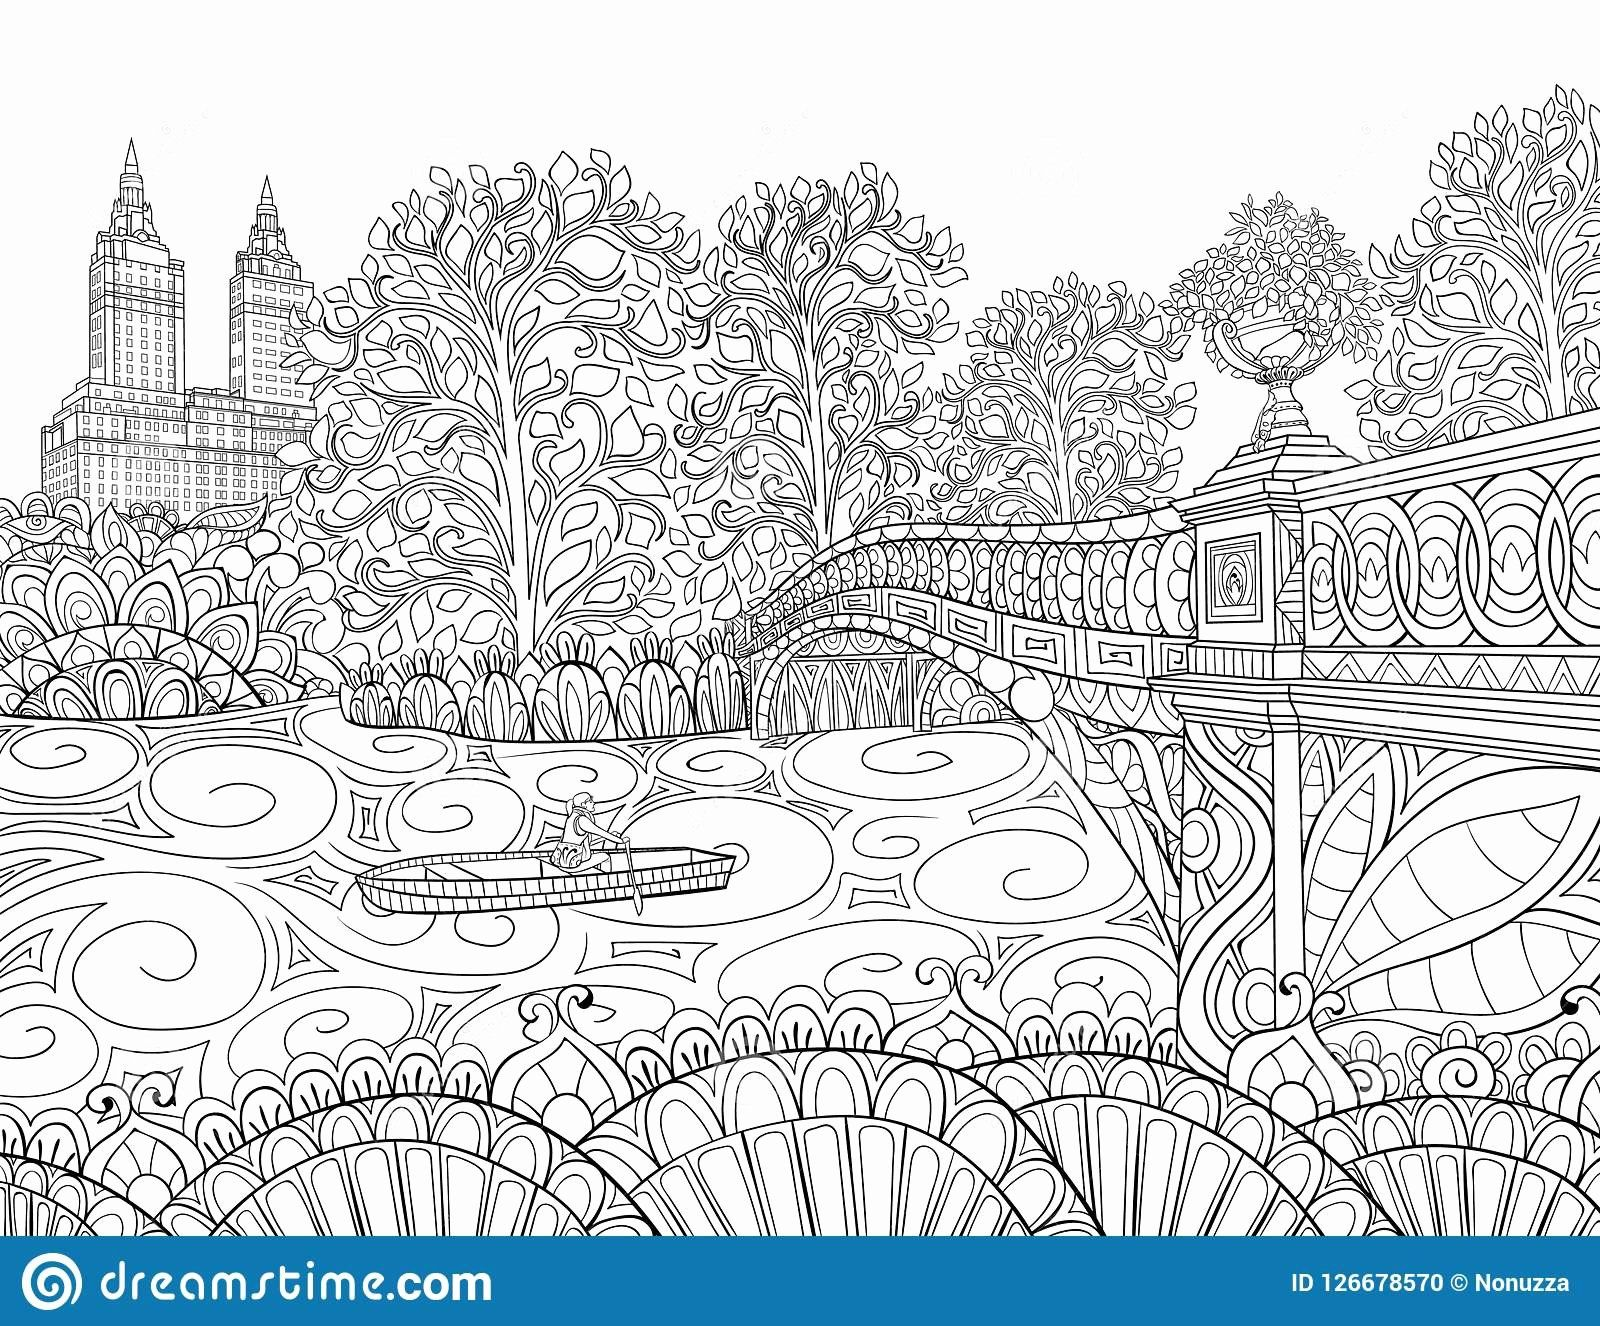 Pin On Tree Coloring Pages